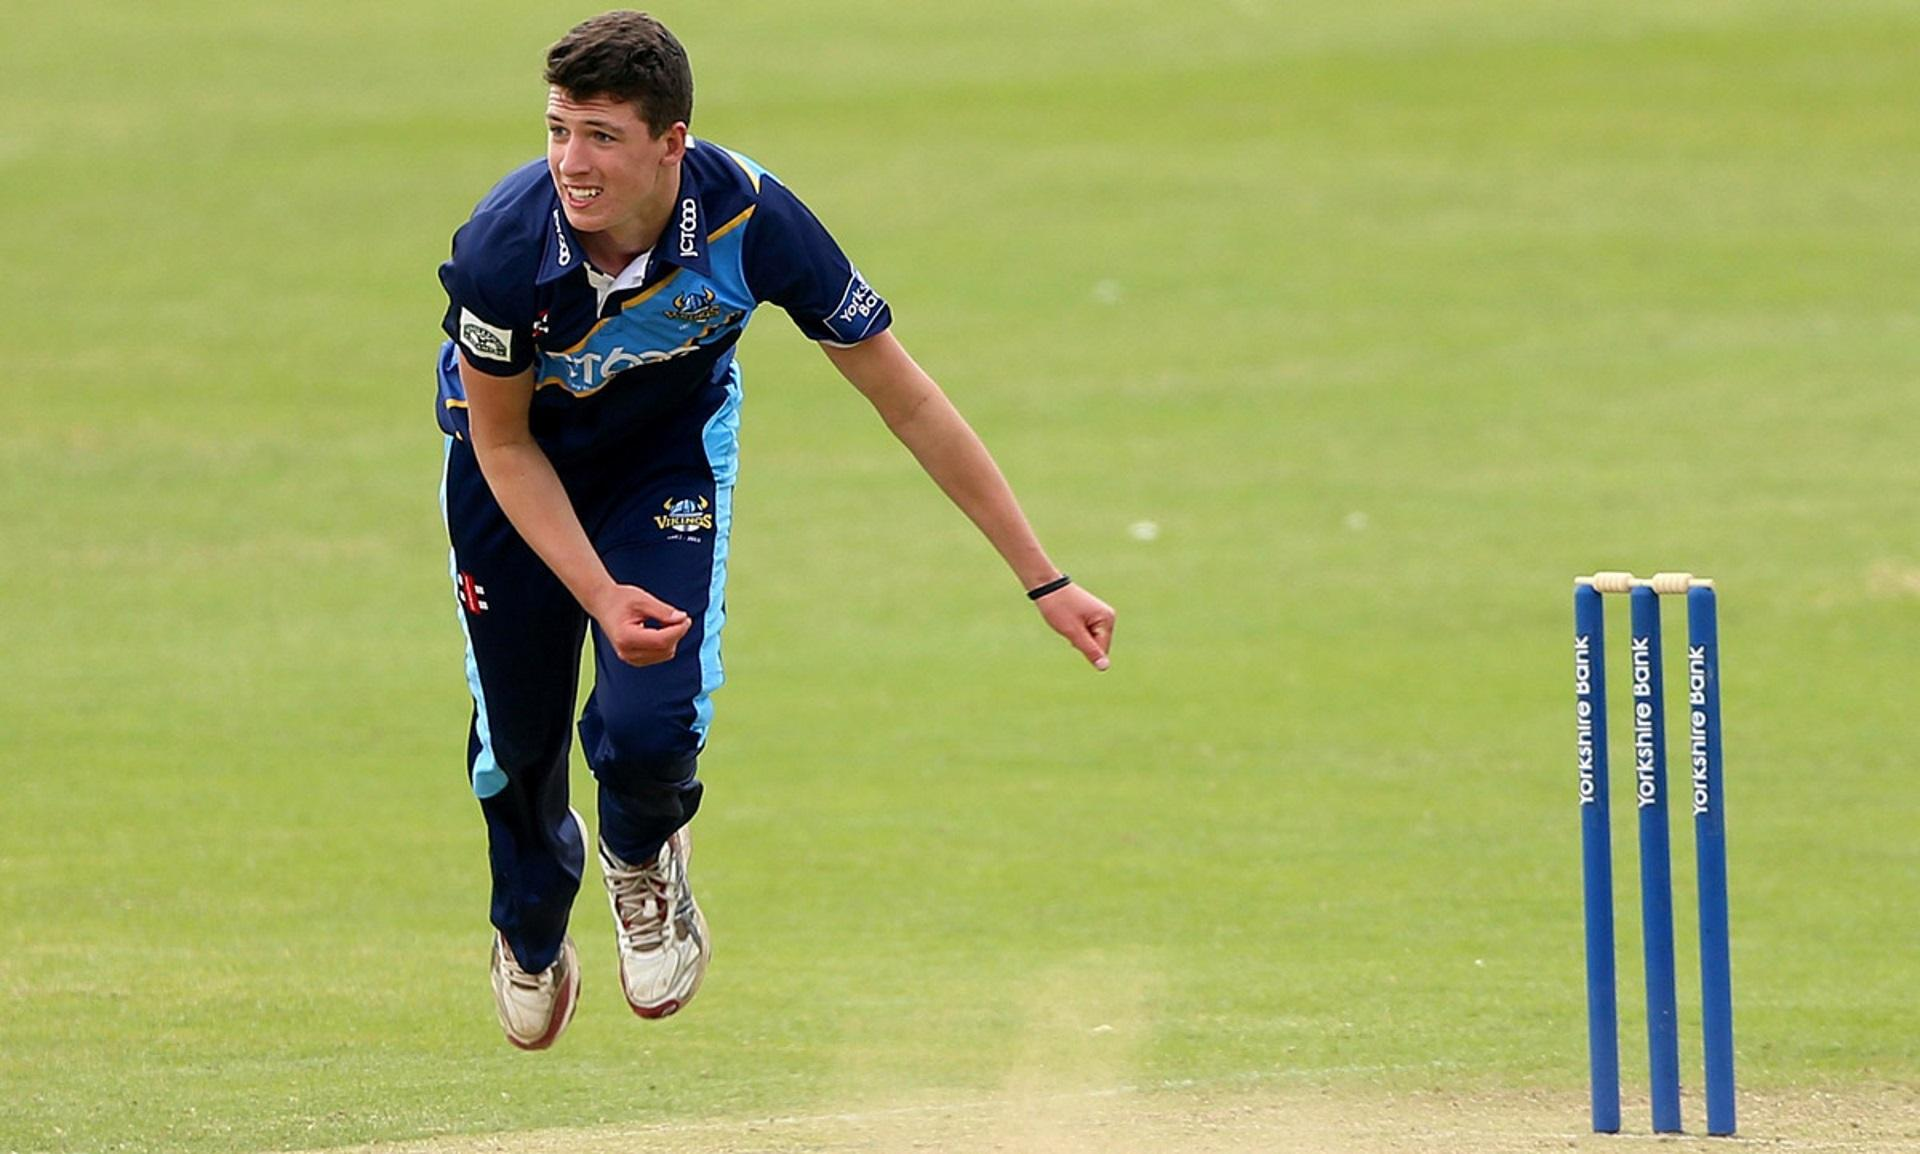 Gale 'Gutted' For All-Rounder Fisher